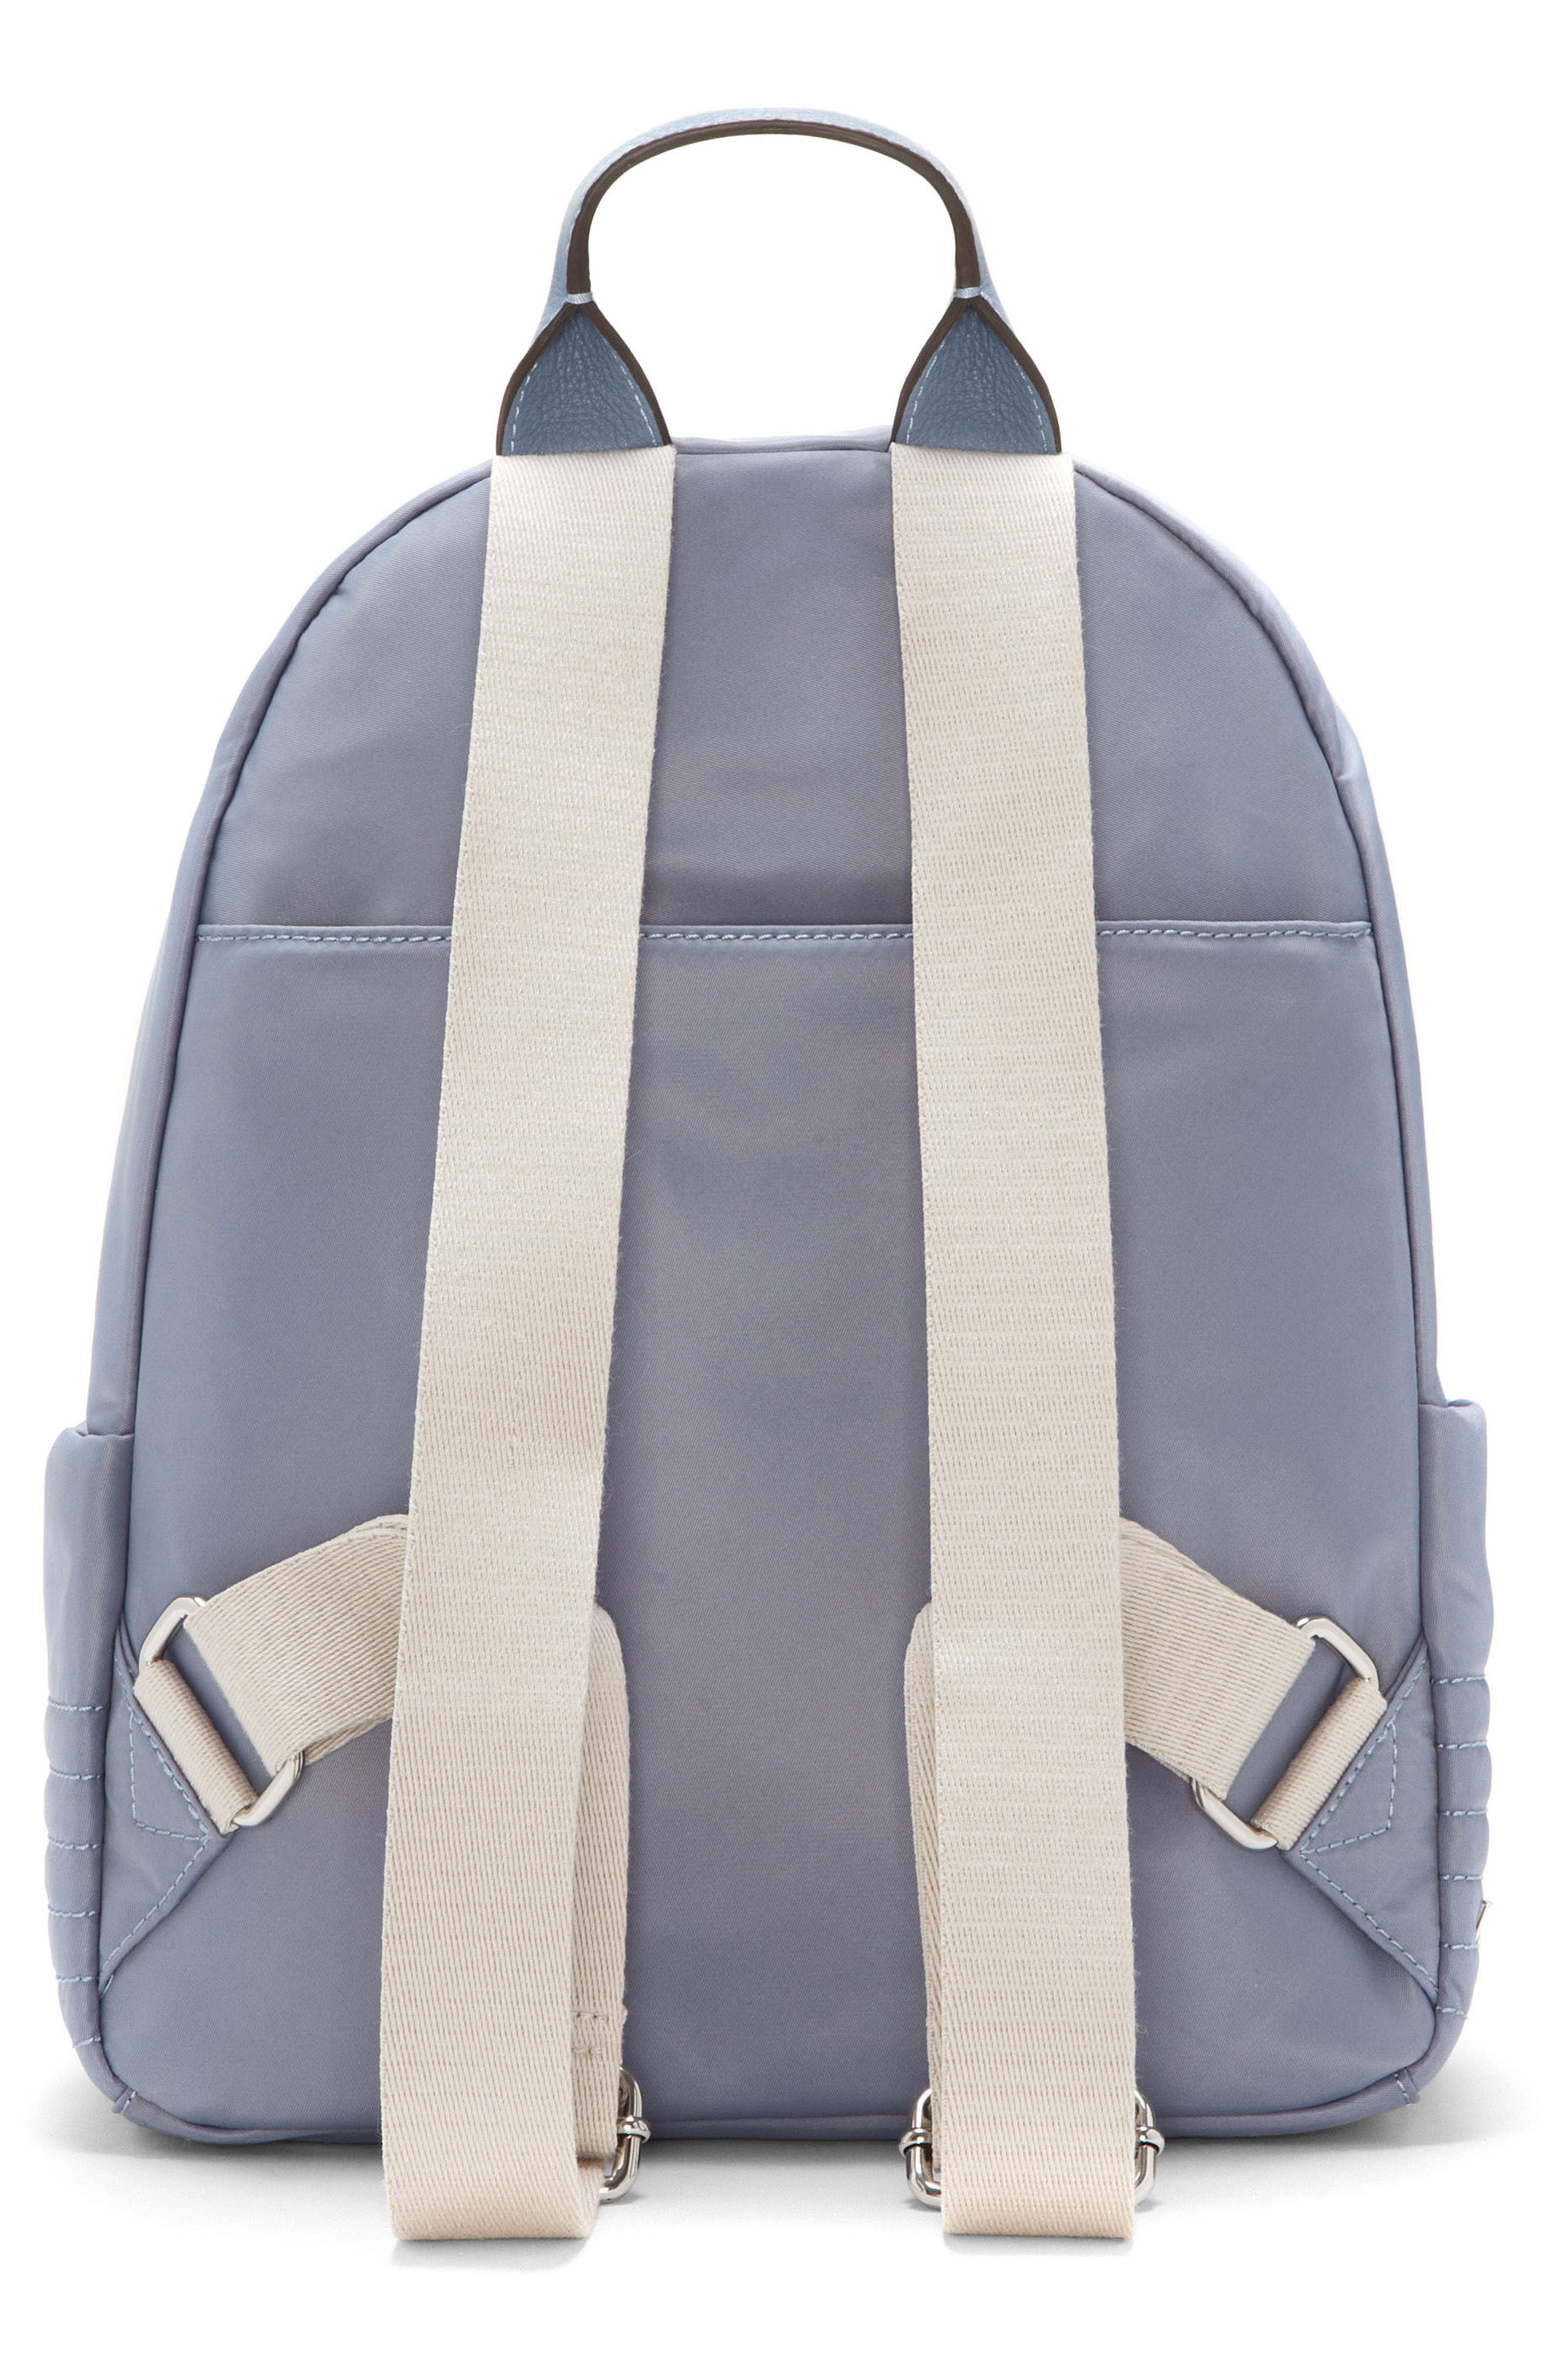 Action Nylon Backpack,                             Alternate thumbnail 2, color,                             Serenity Blue